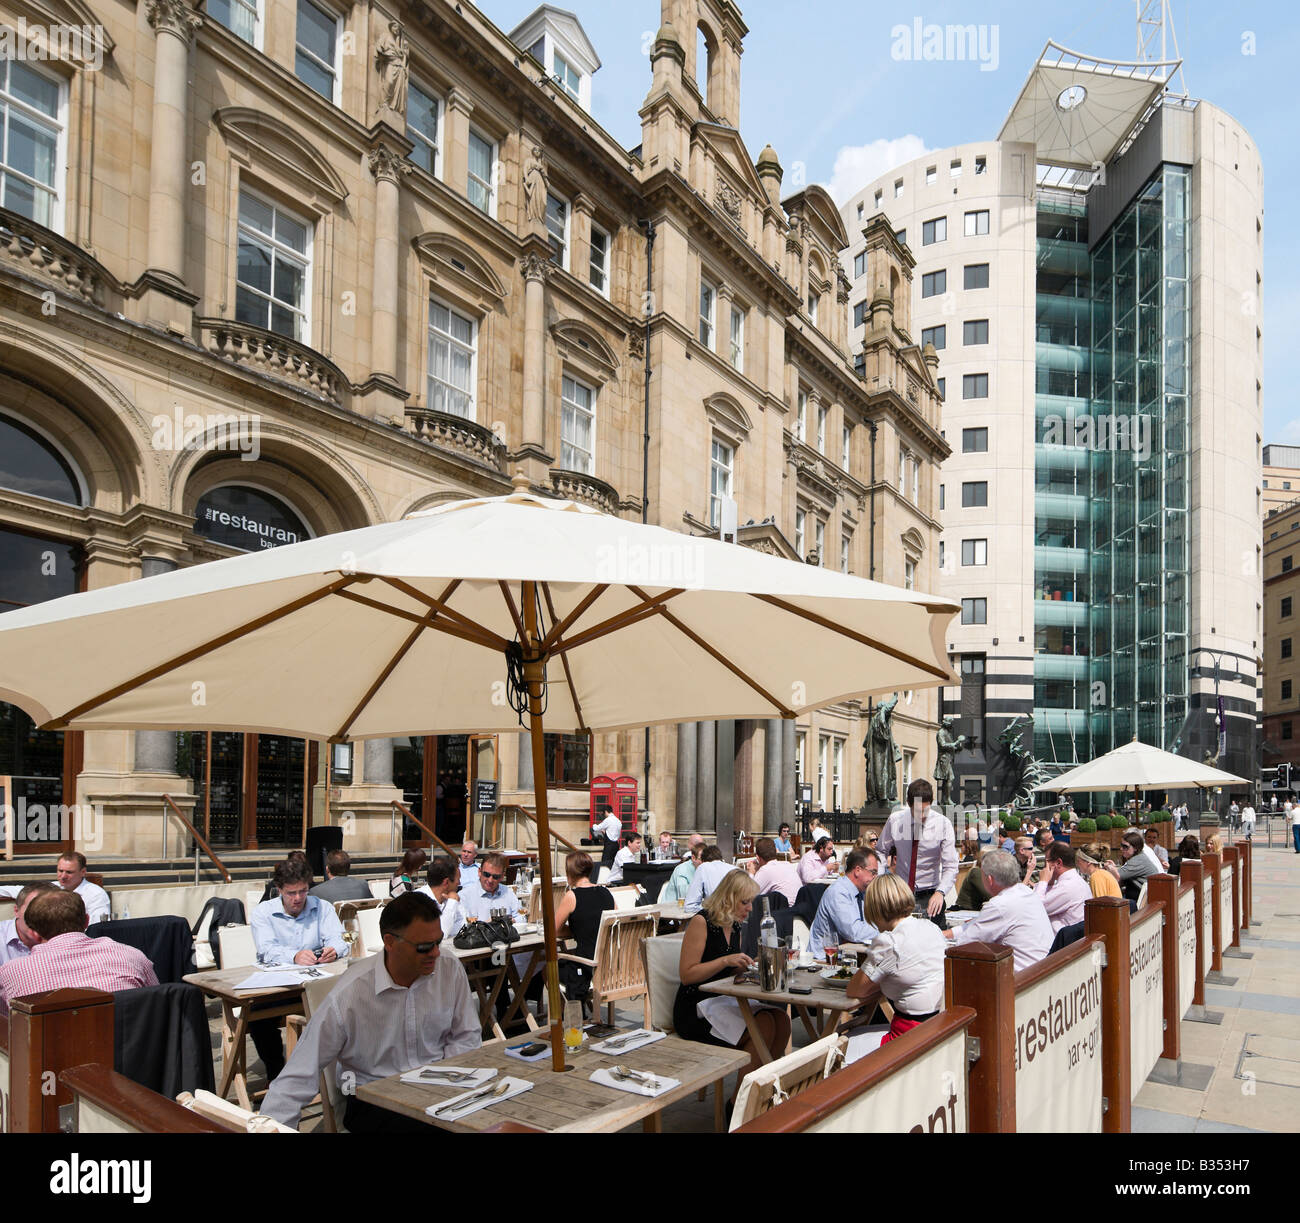 The Restaurant Bar and Grill in the Old Post Office on a Friday lunchtime, City Square, Leeds, West Yorkshire, England - Stock Image